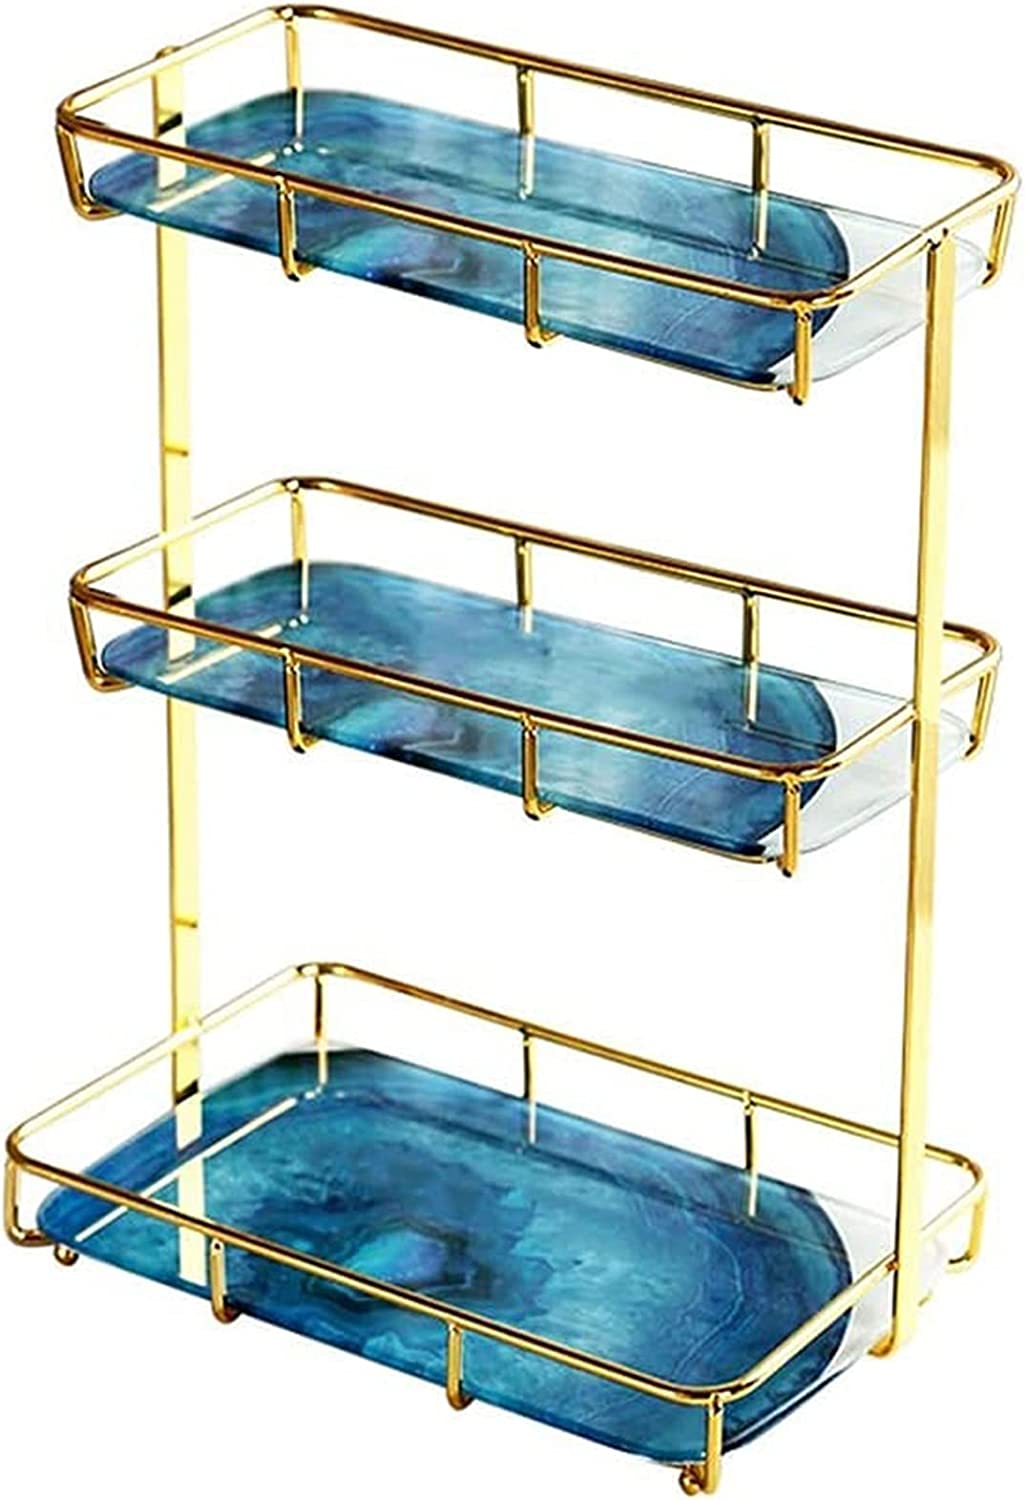 DNZJ Bathroom Glass Shelf Tier Selling Selling and selling Square 3